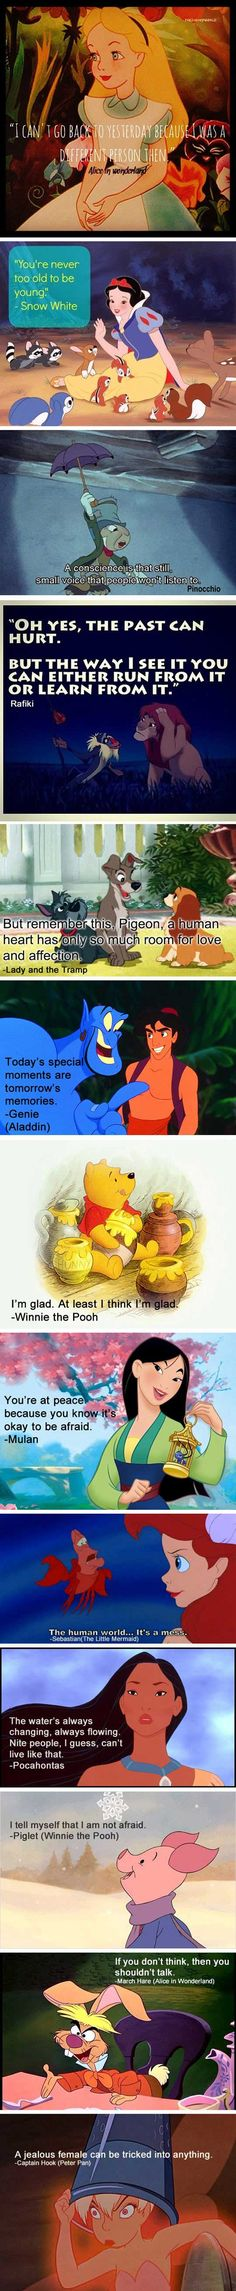 Shockingly profound Disney movies quotes…If you don't think, then you should not talk.